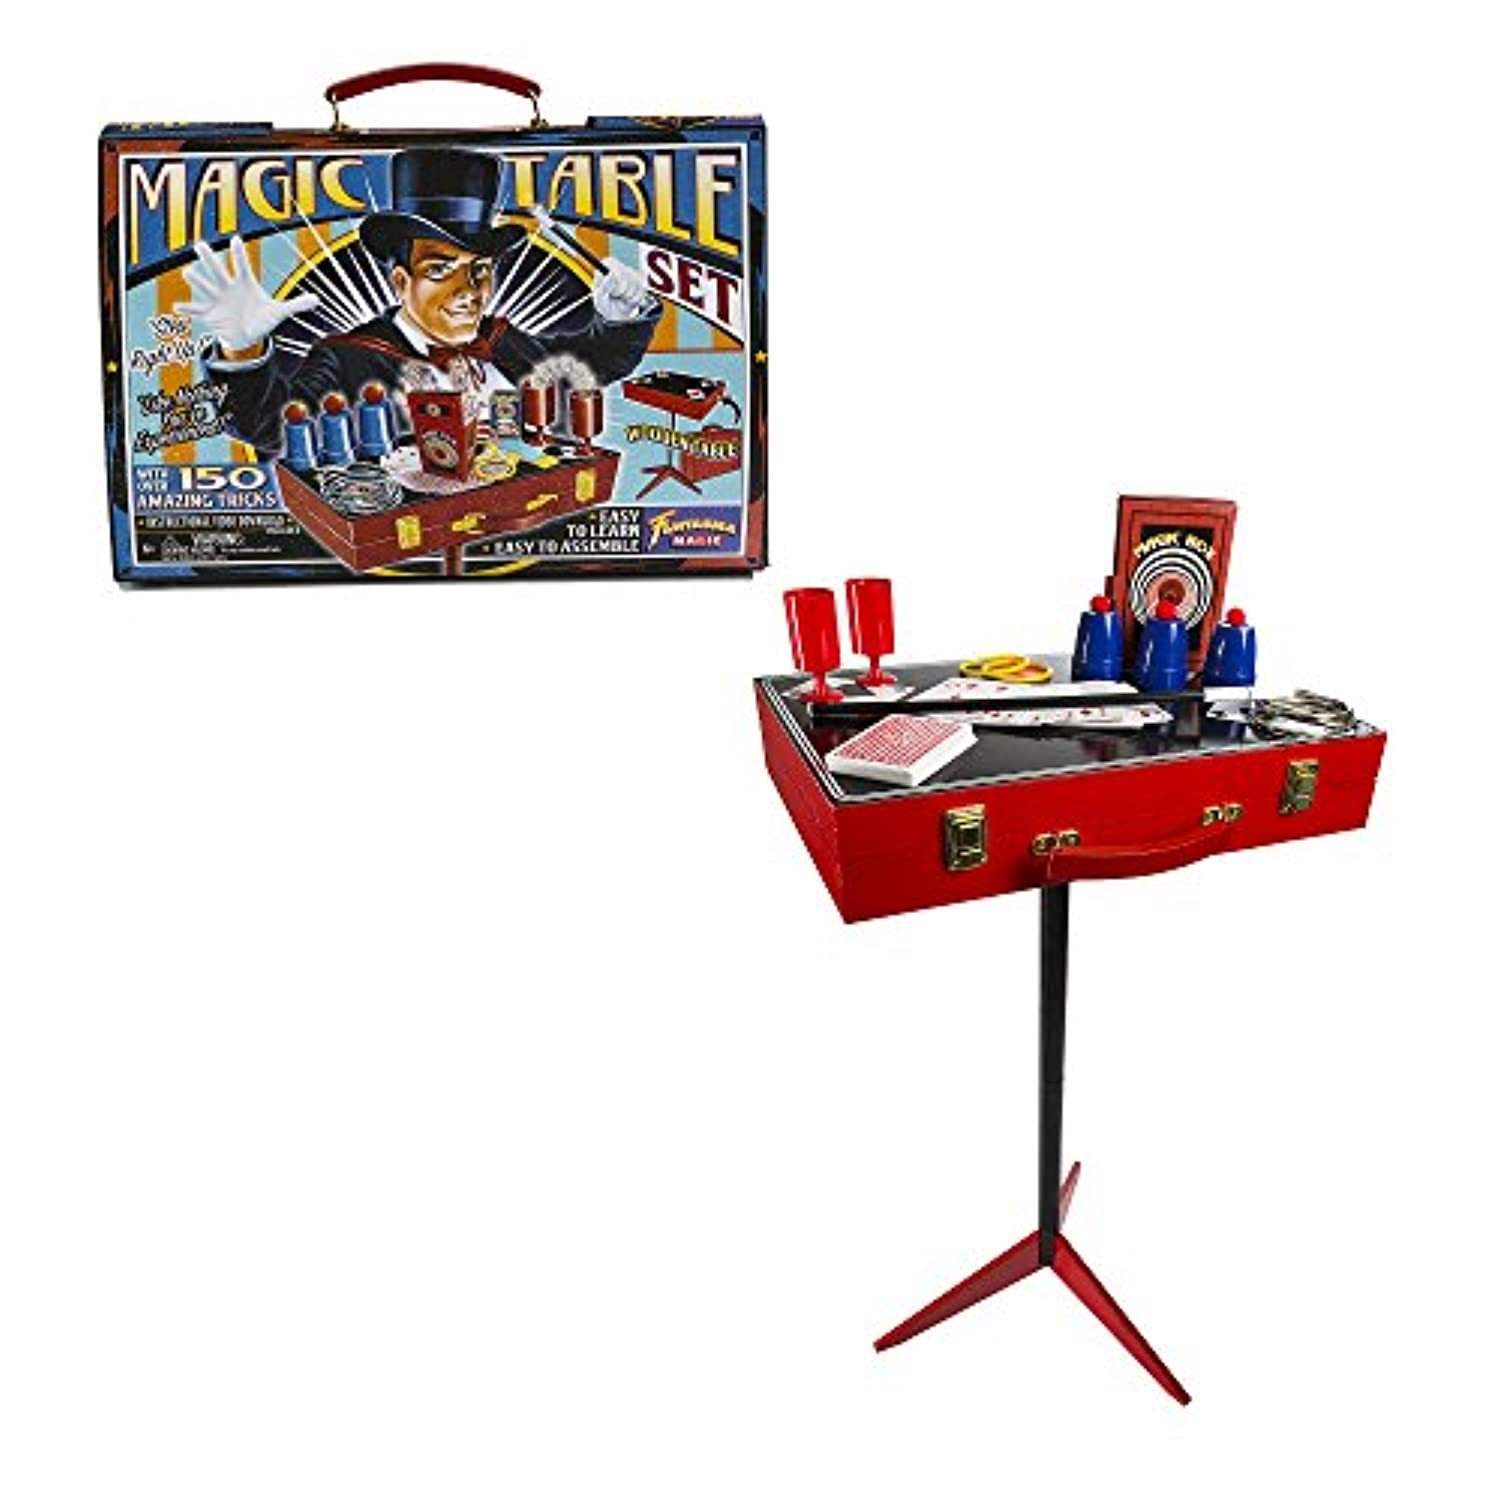 [ファンタスマ]Fantasma Toys Retro Magic Table Set Loaded with Props and Featuring 150 Magic Tricks Includes [並行輸入品]